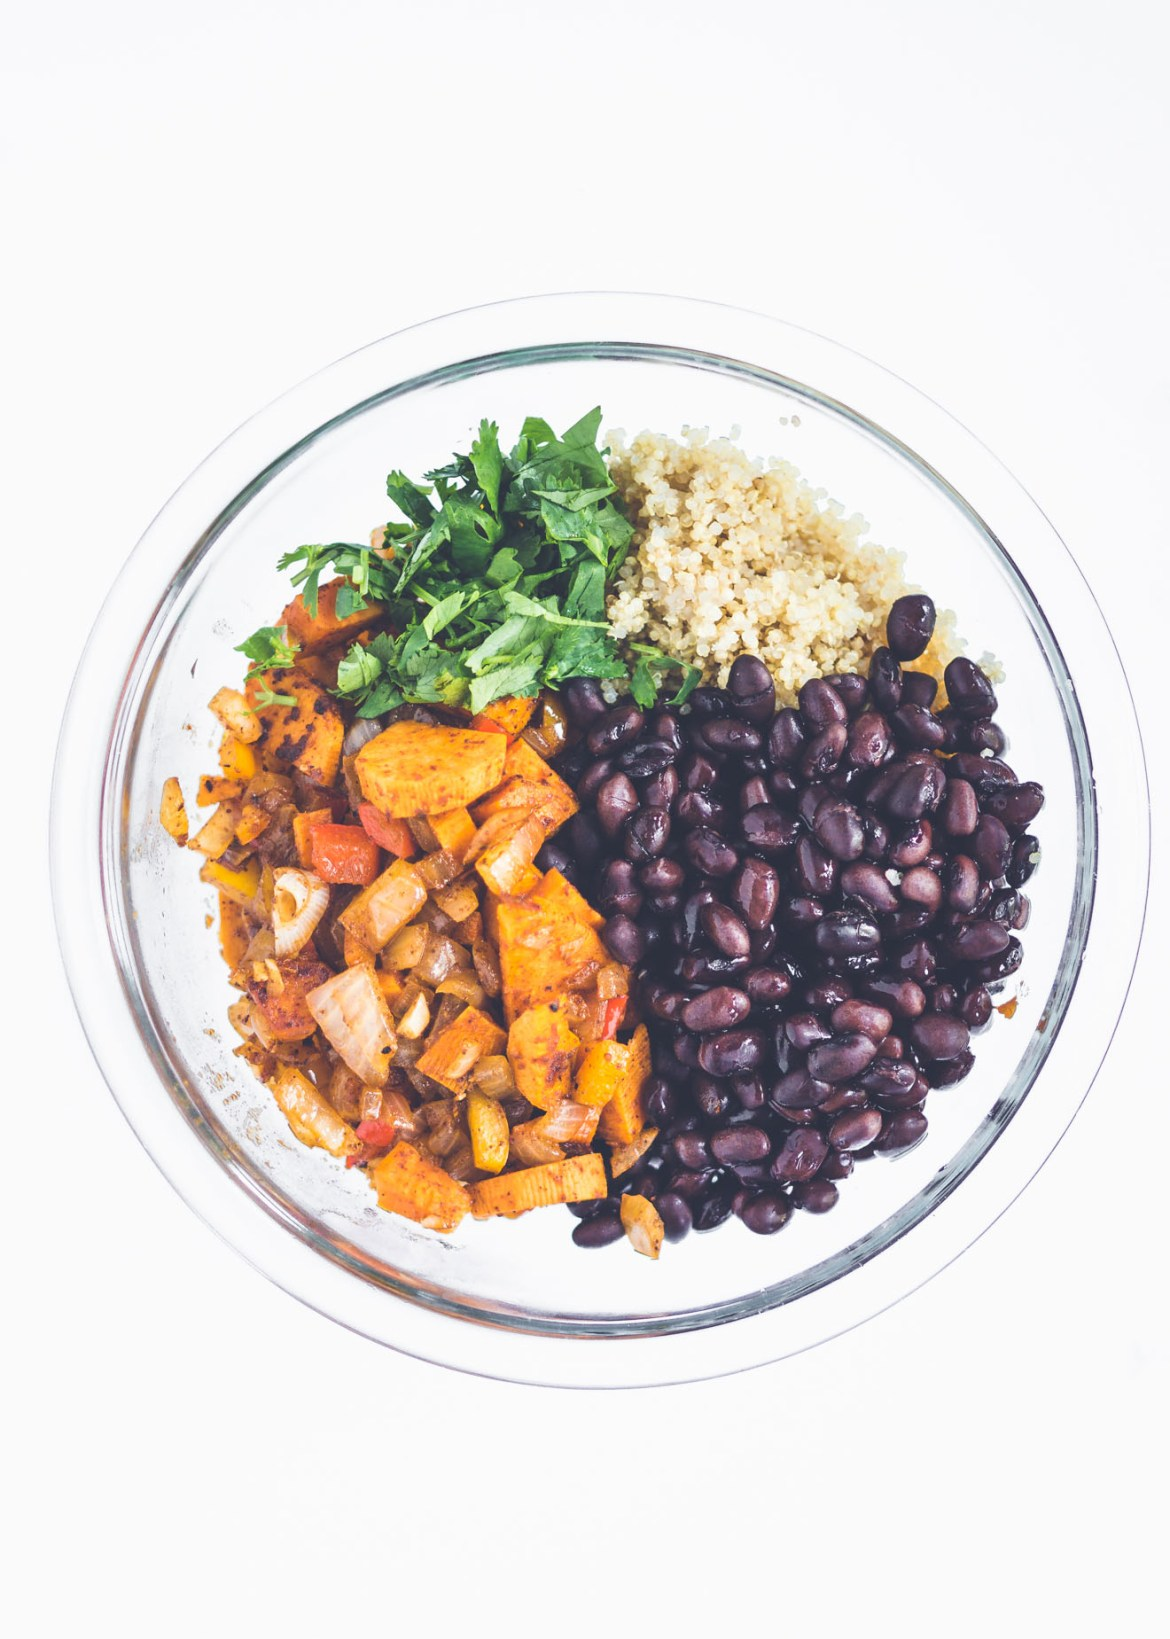 Bowl of cooked sweet potatoes, cilantro, quinoa and black beans